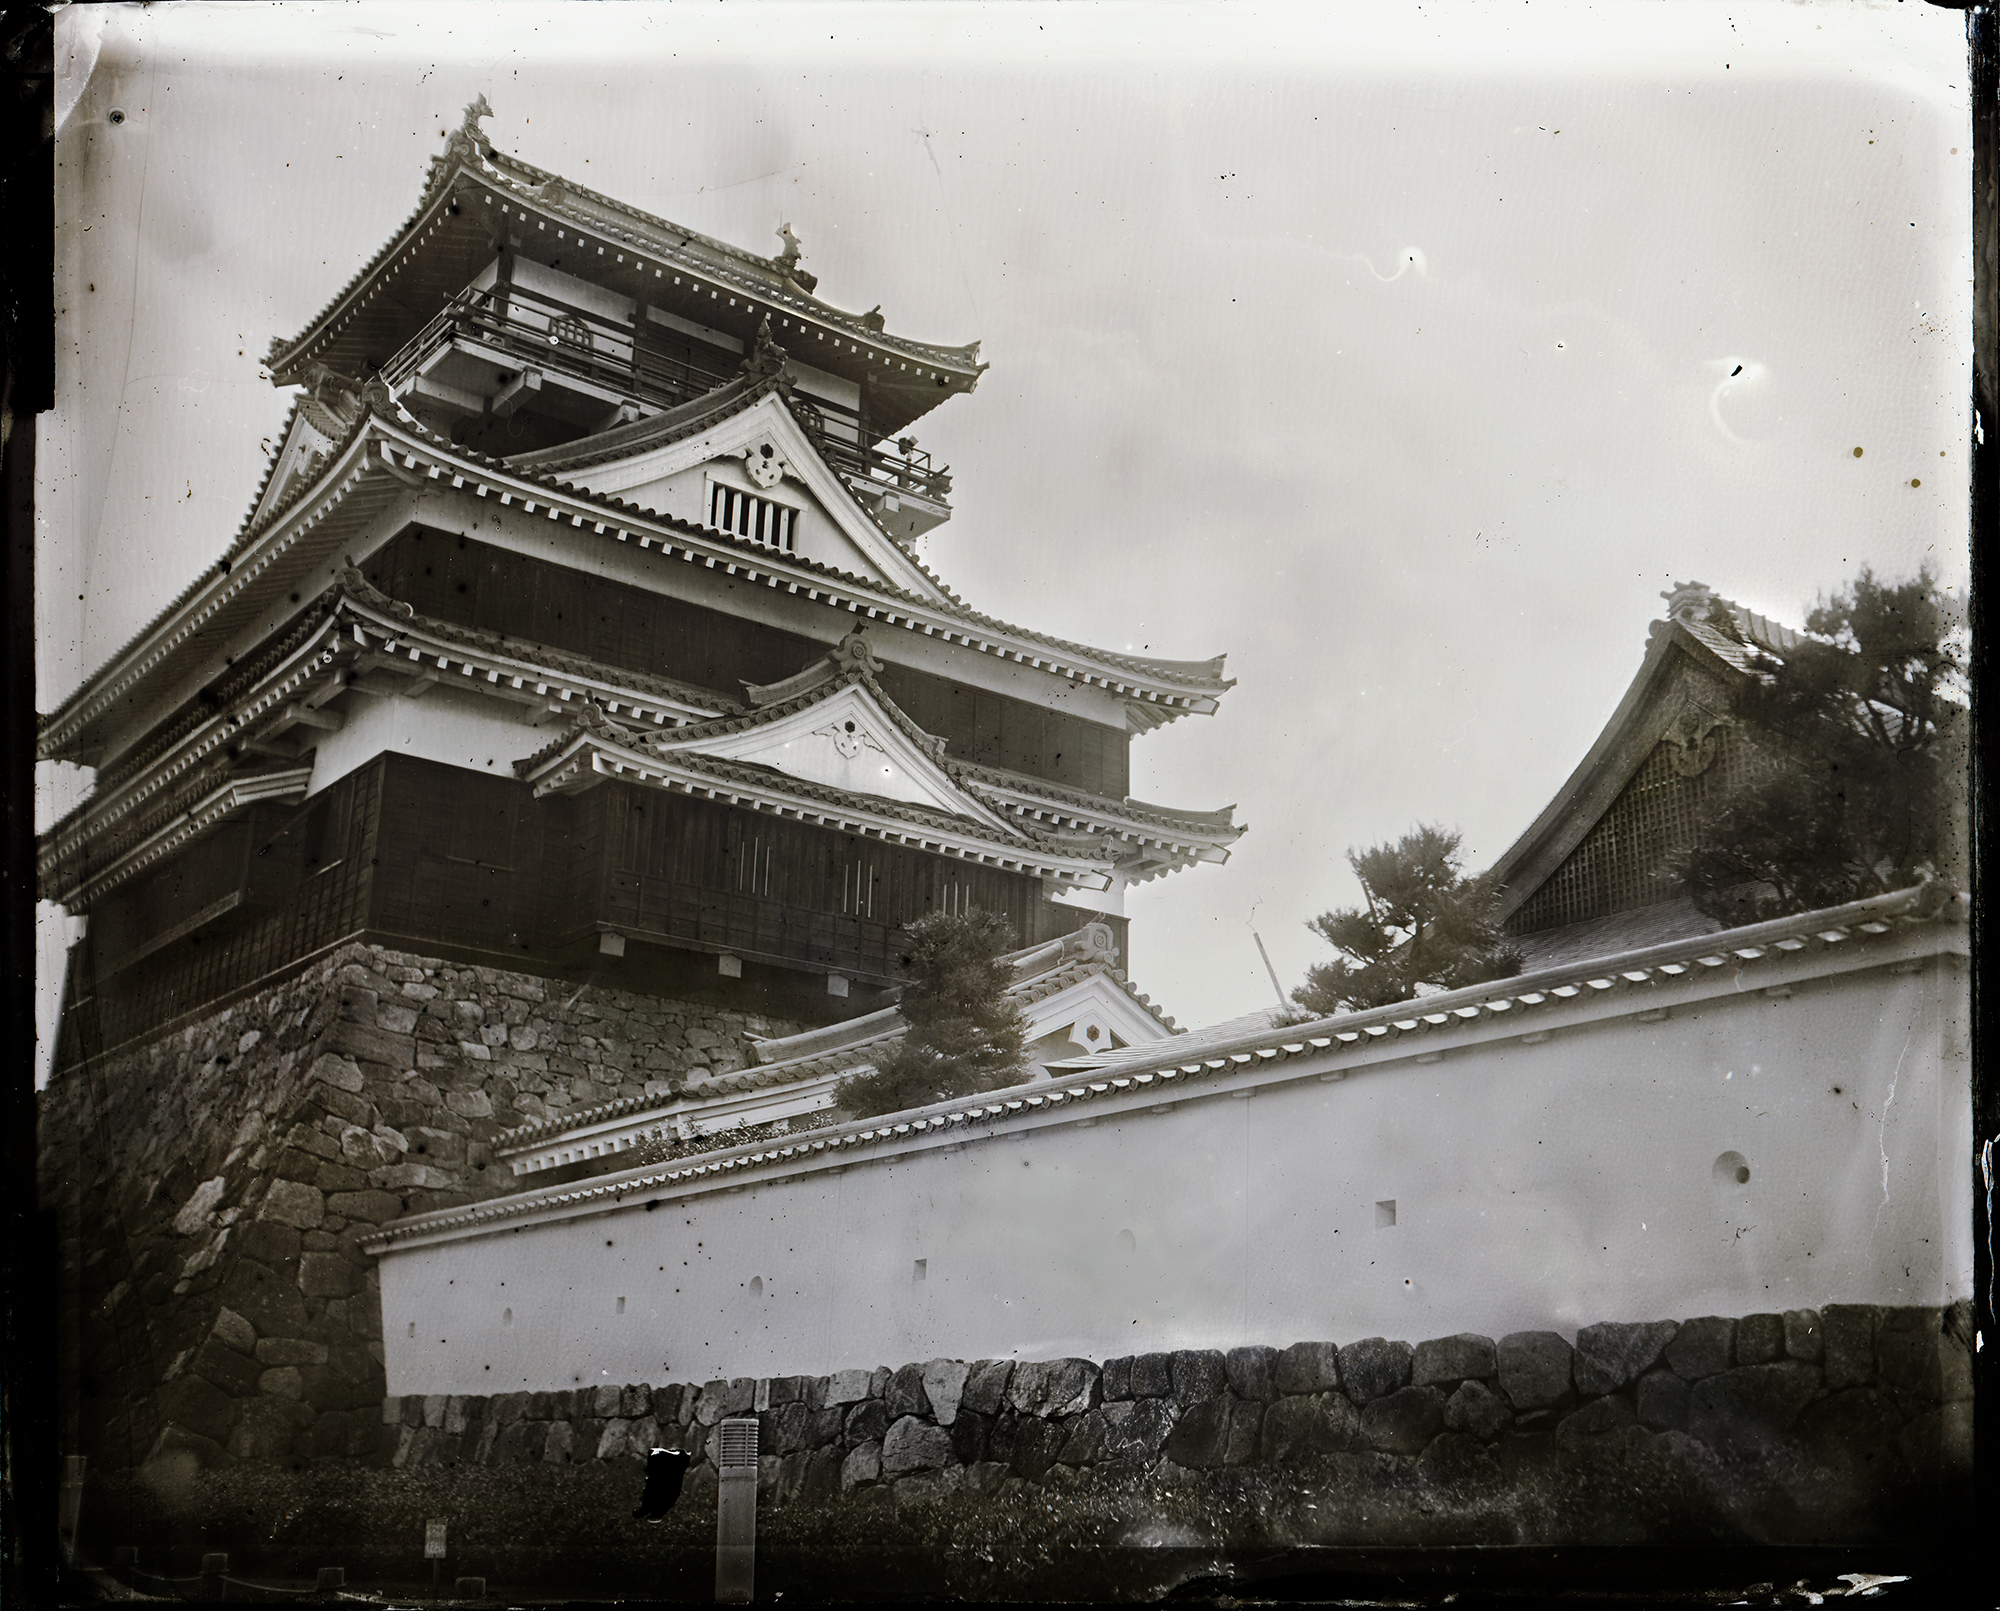 Copy of 湿板写真 清洲城  Wet Plate Collodion Process Ambrotype